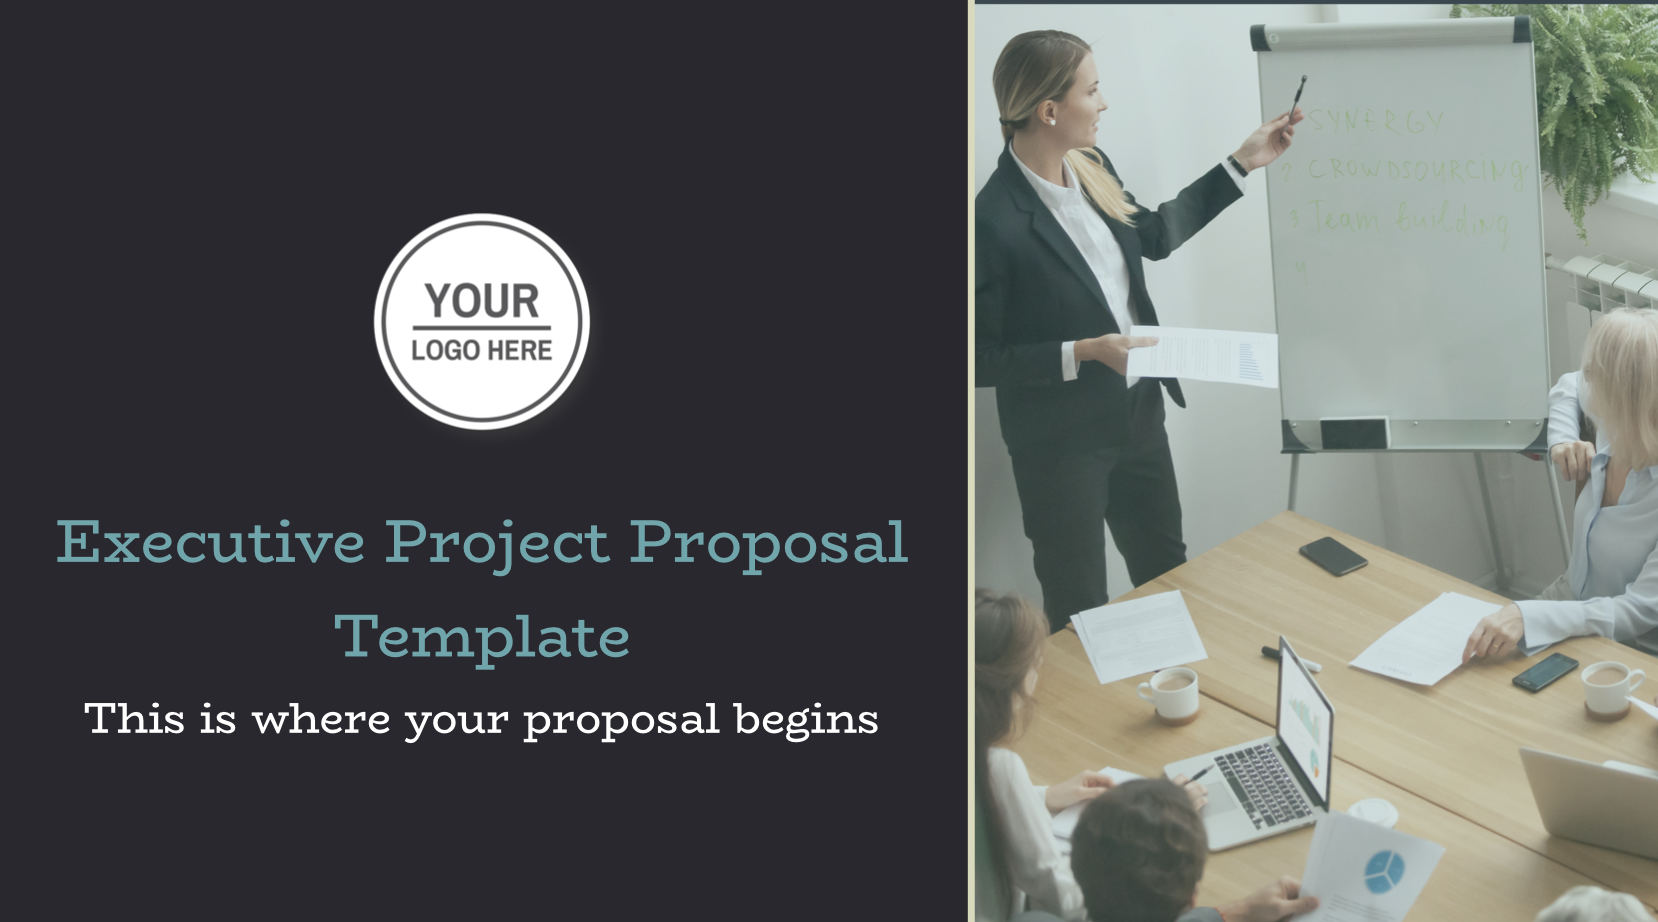 You can assist in the correct expansion of the company as well as budget approvals. You may also improve the visibility of your potential project by forming the required relationships.